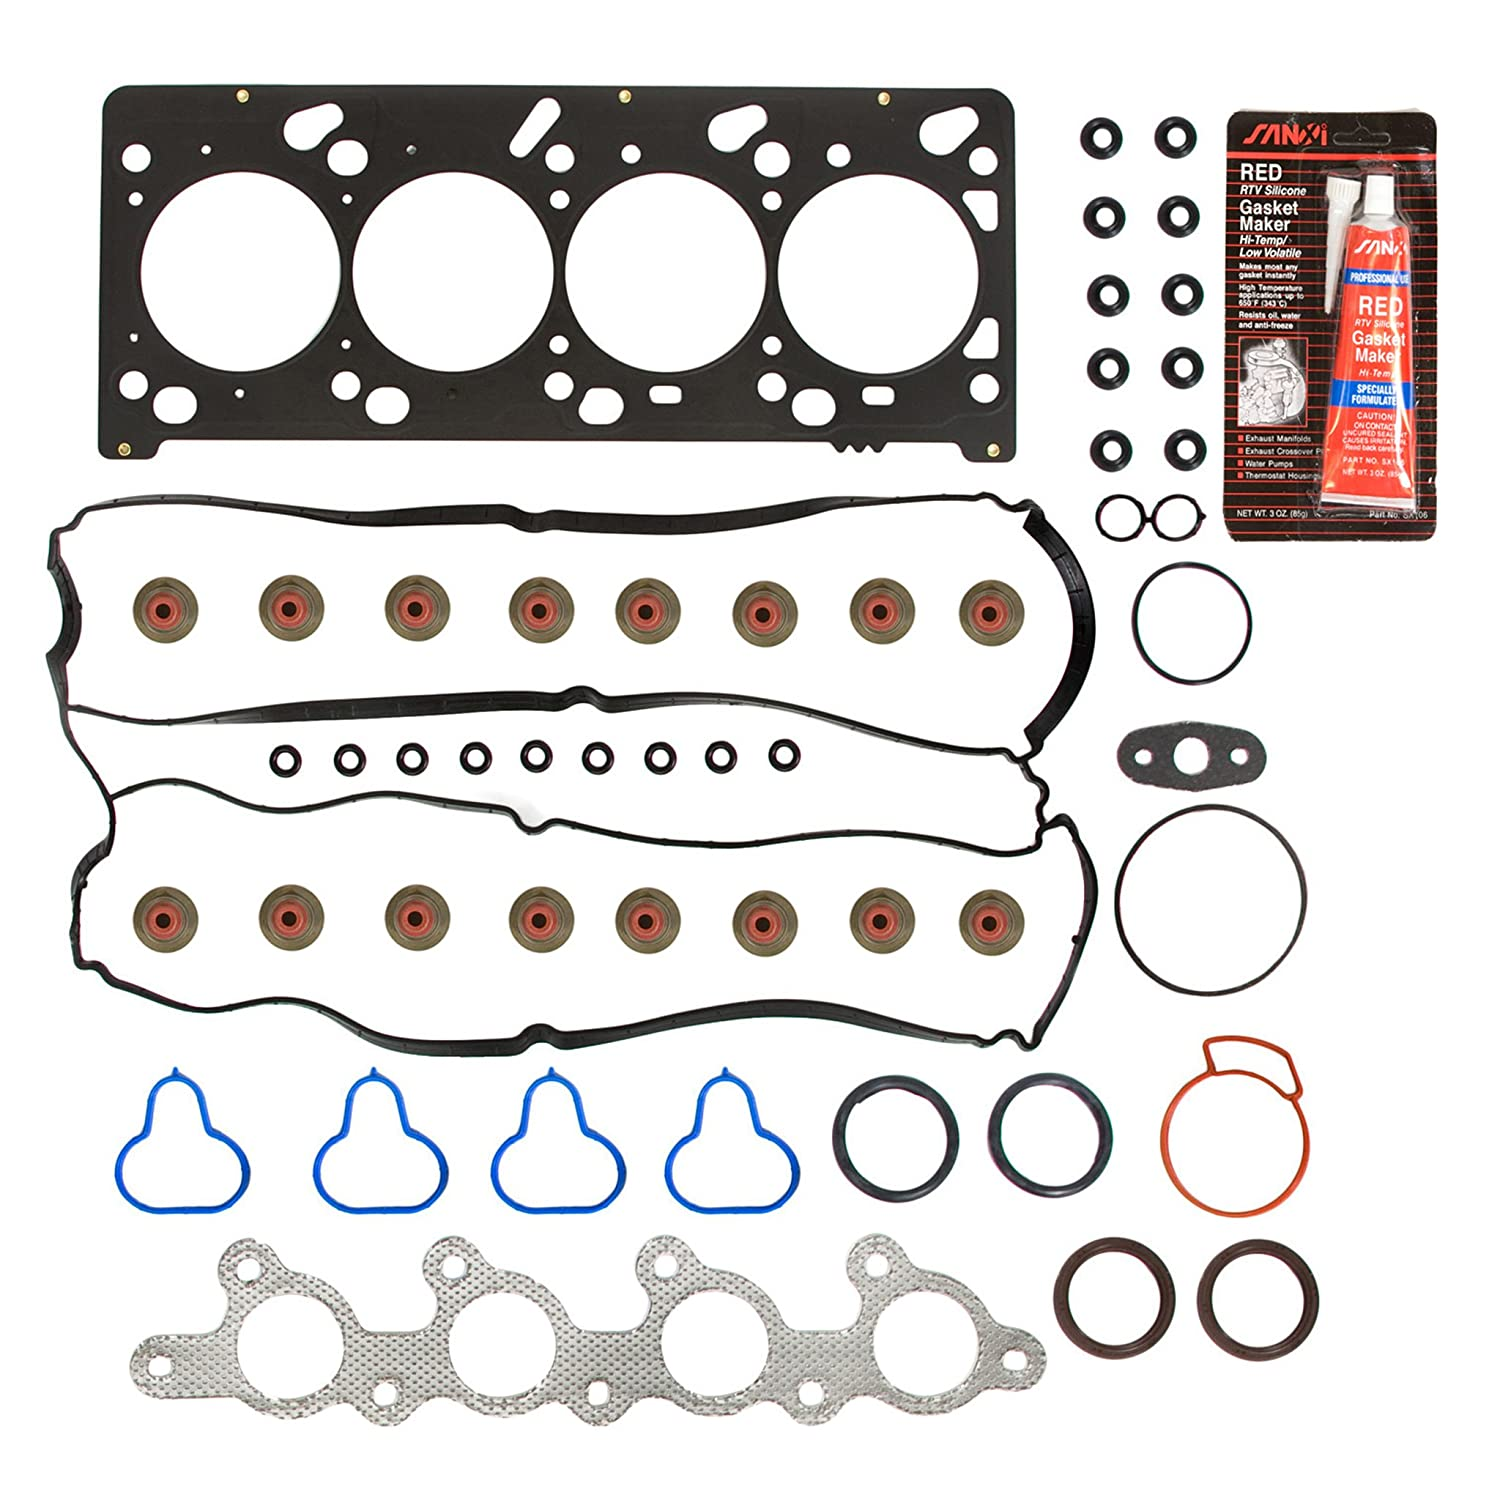 Evergreen 8-20205 Cylinder Head Gasket Set